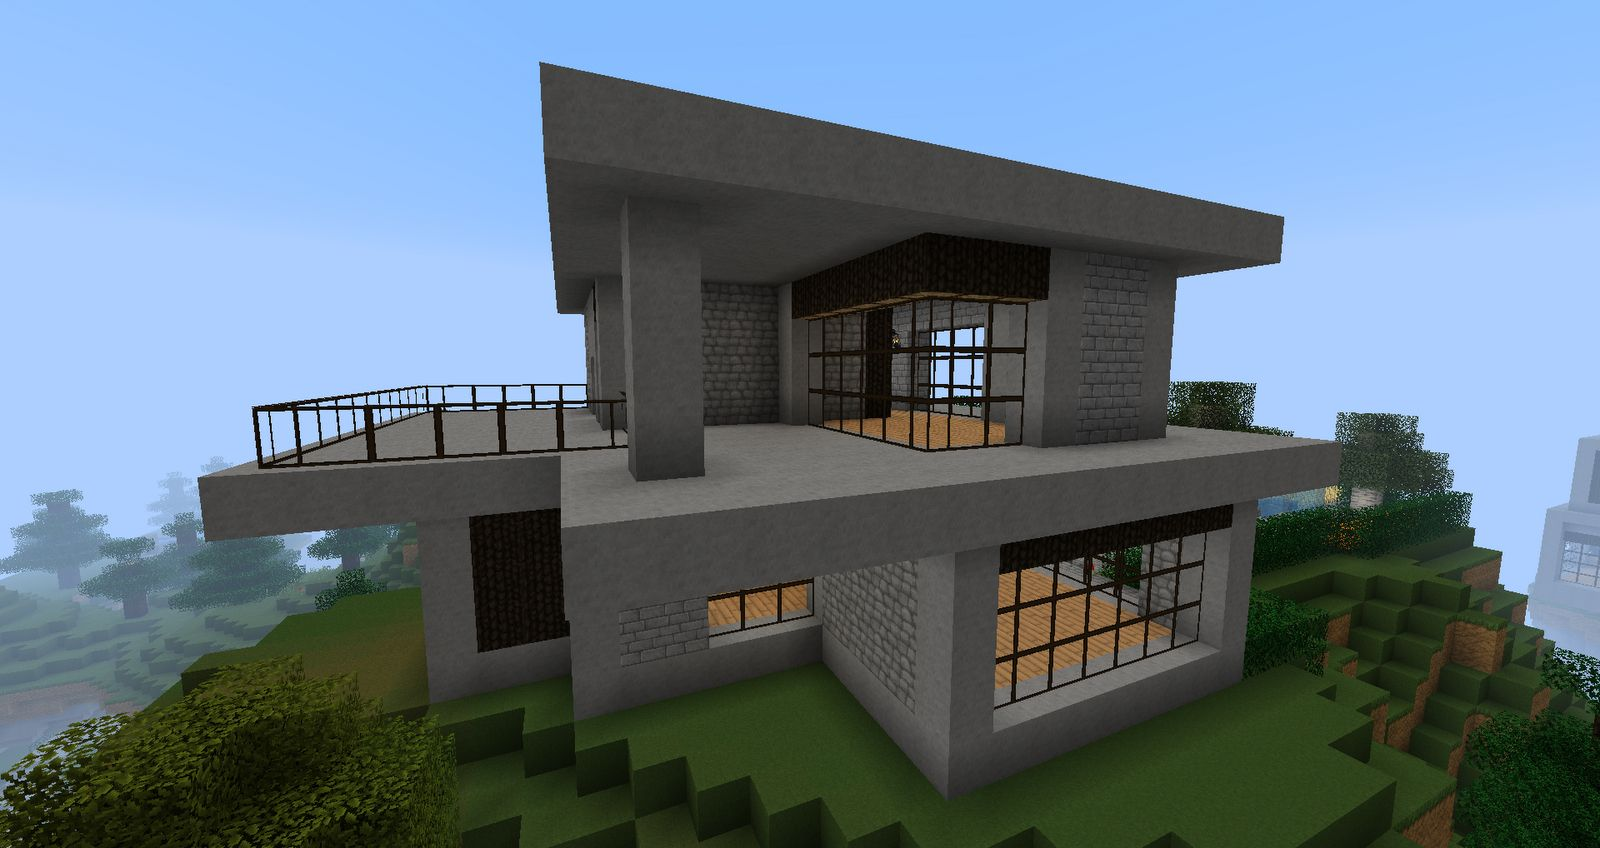 Cool minecraft house | Laughable | Pinterest | House, Minecraft ...